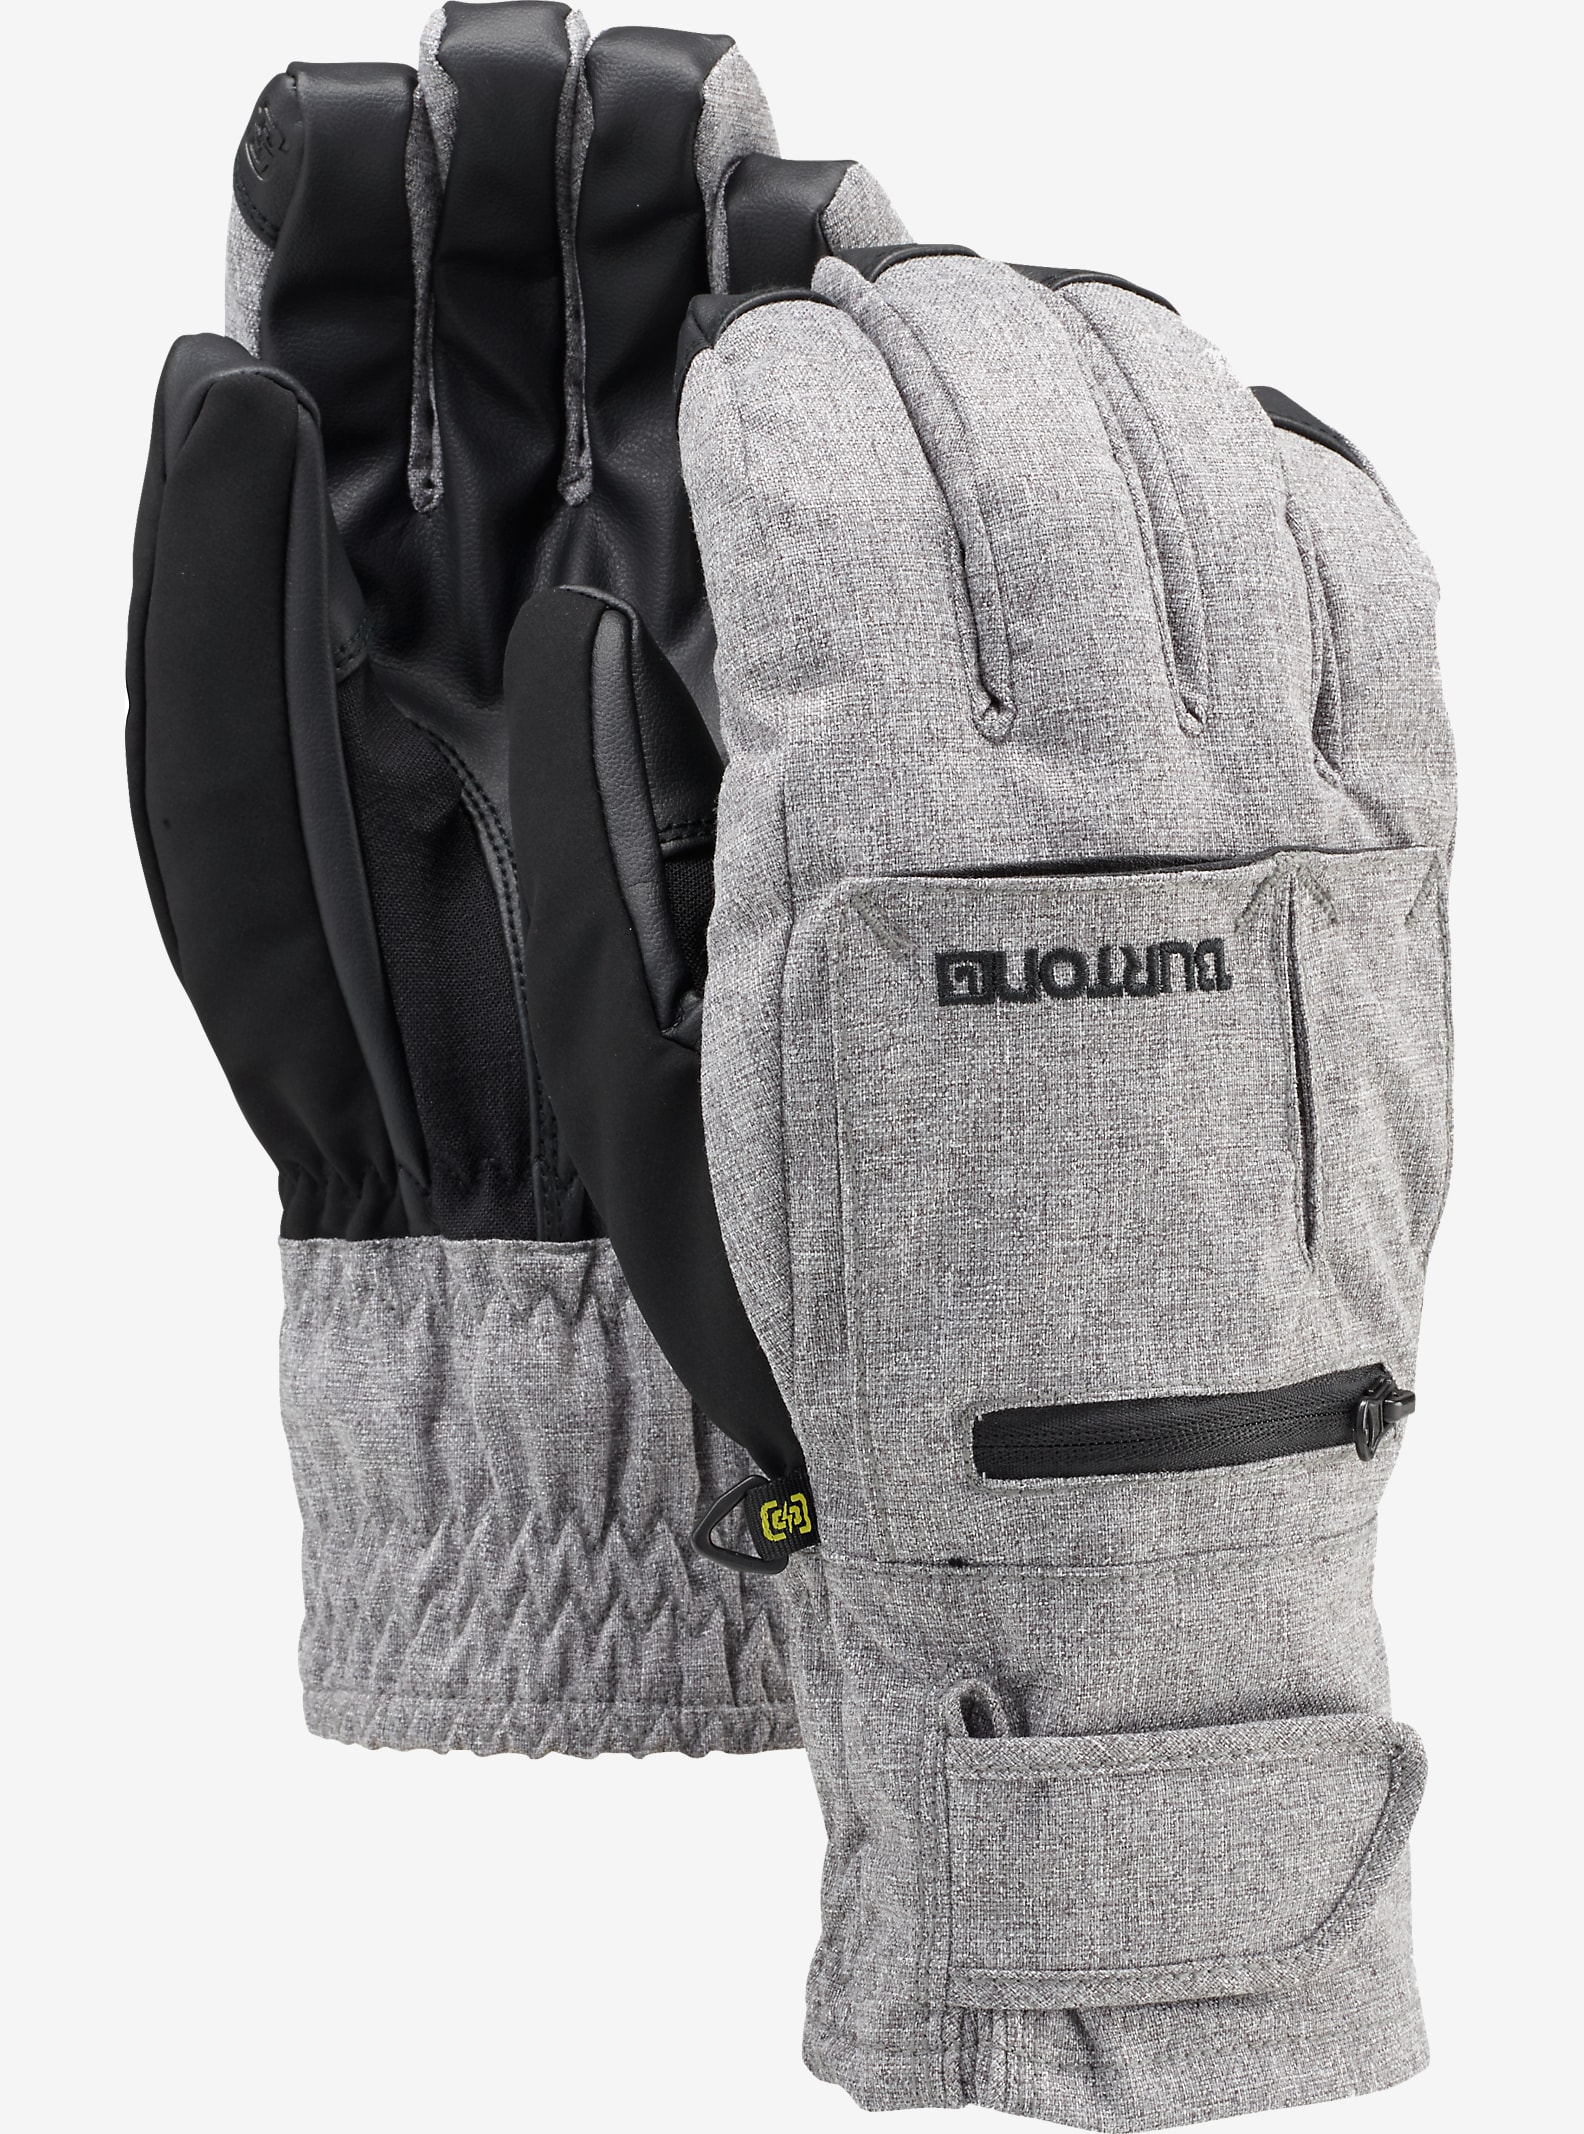 Burton Baker 2-In-1 Under Glove shown in Bog Heather